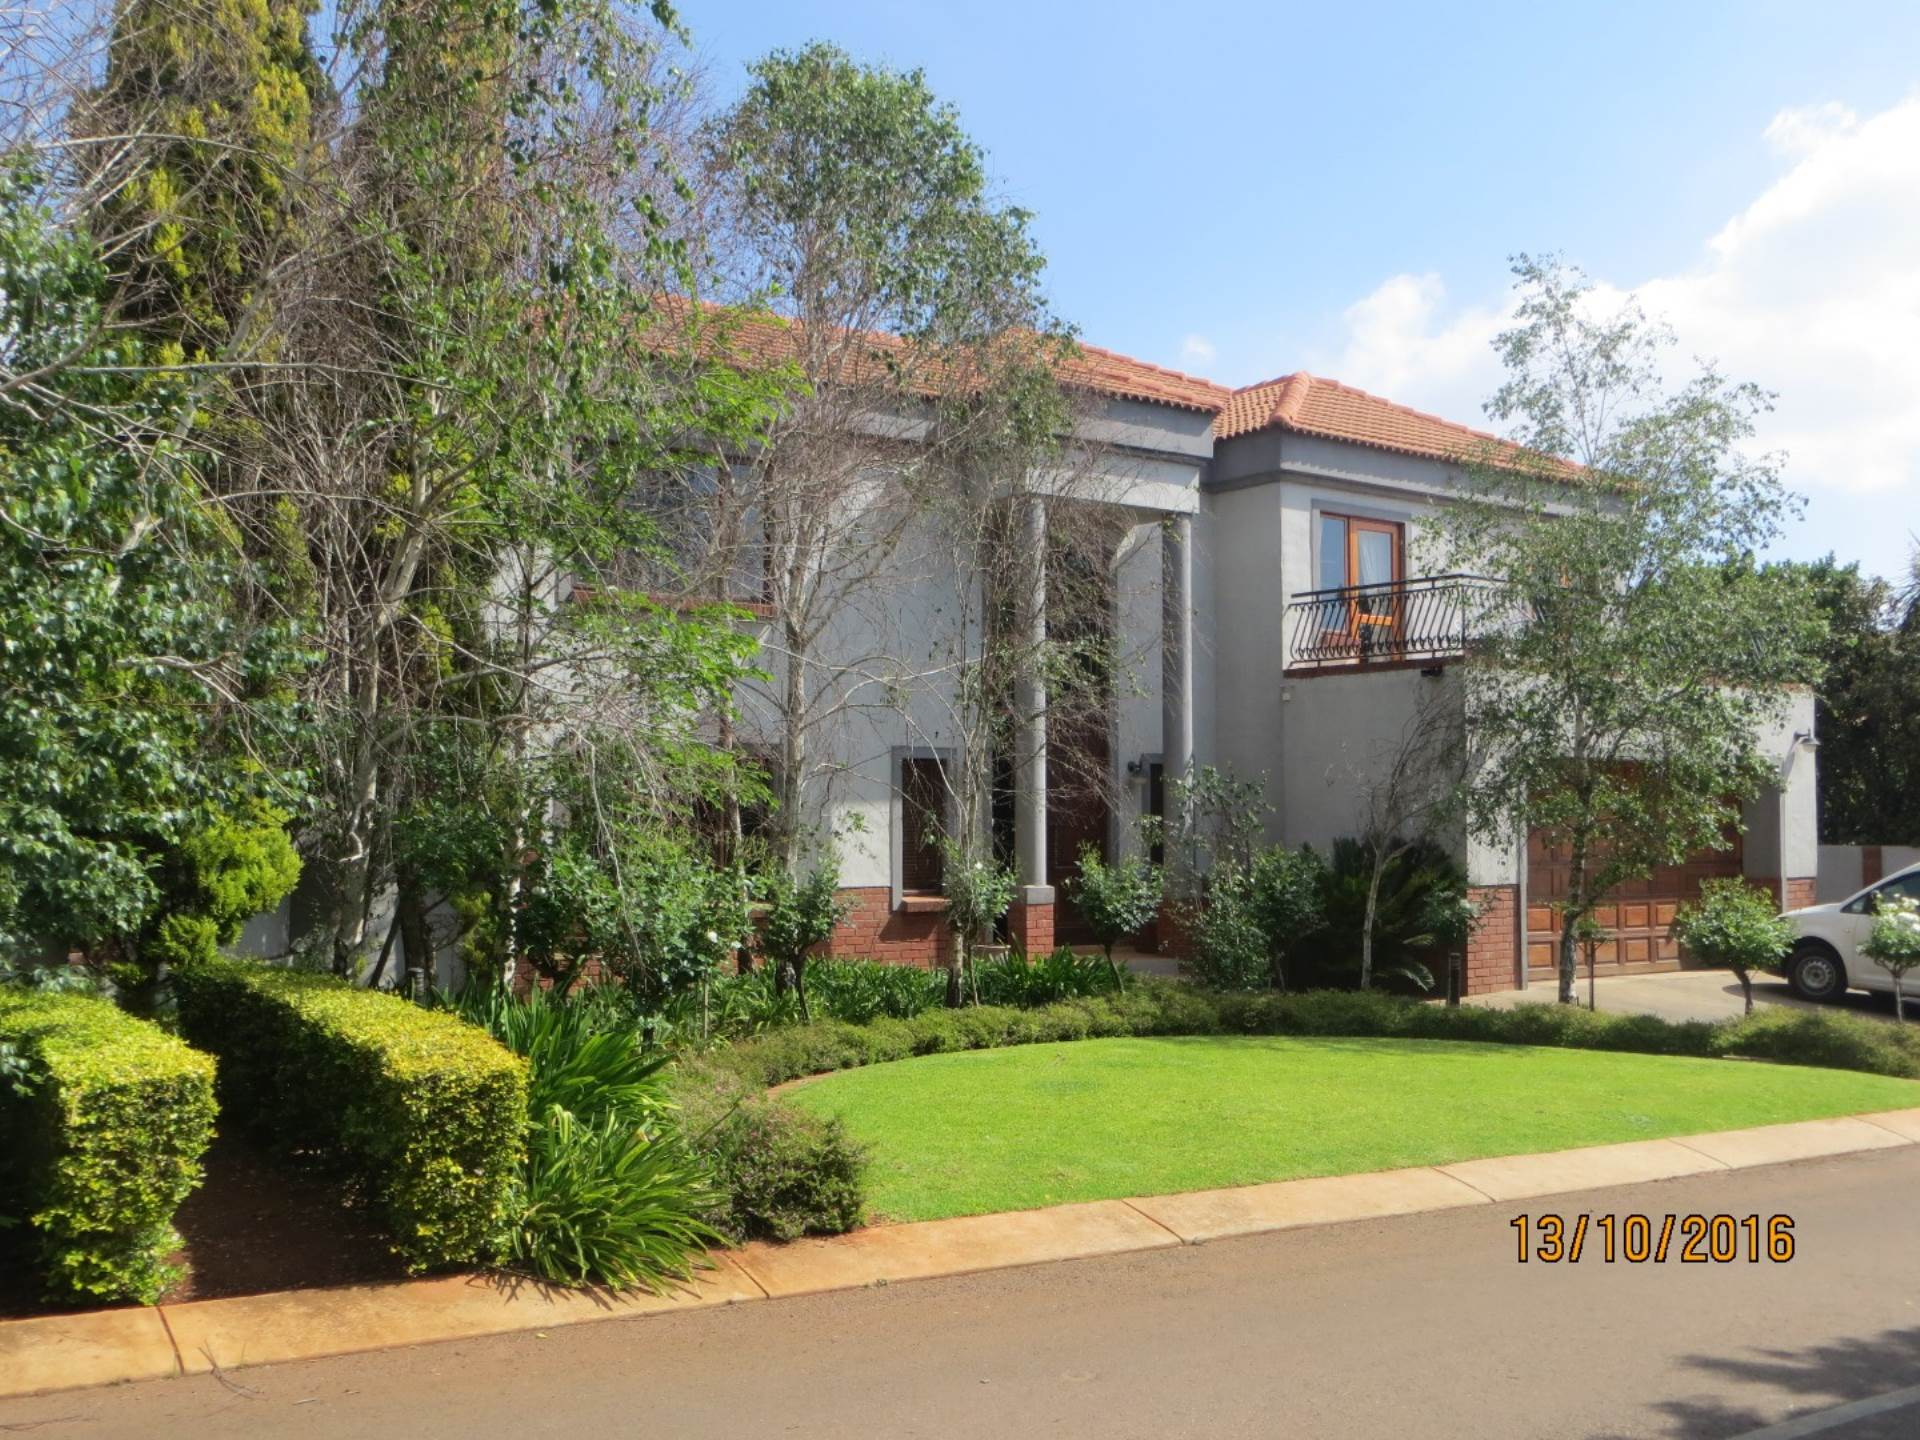 4 BedroomHouse For Sale In Irene Village View